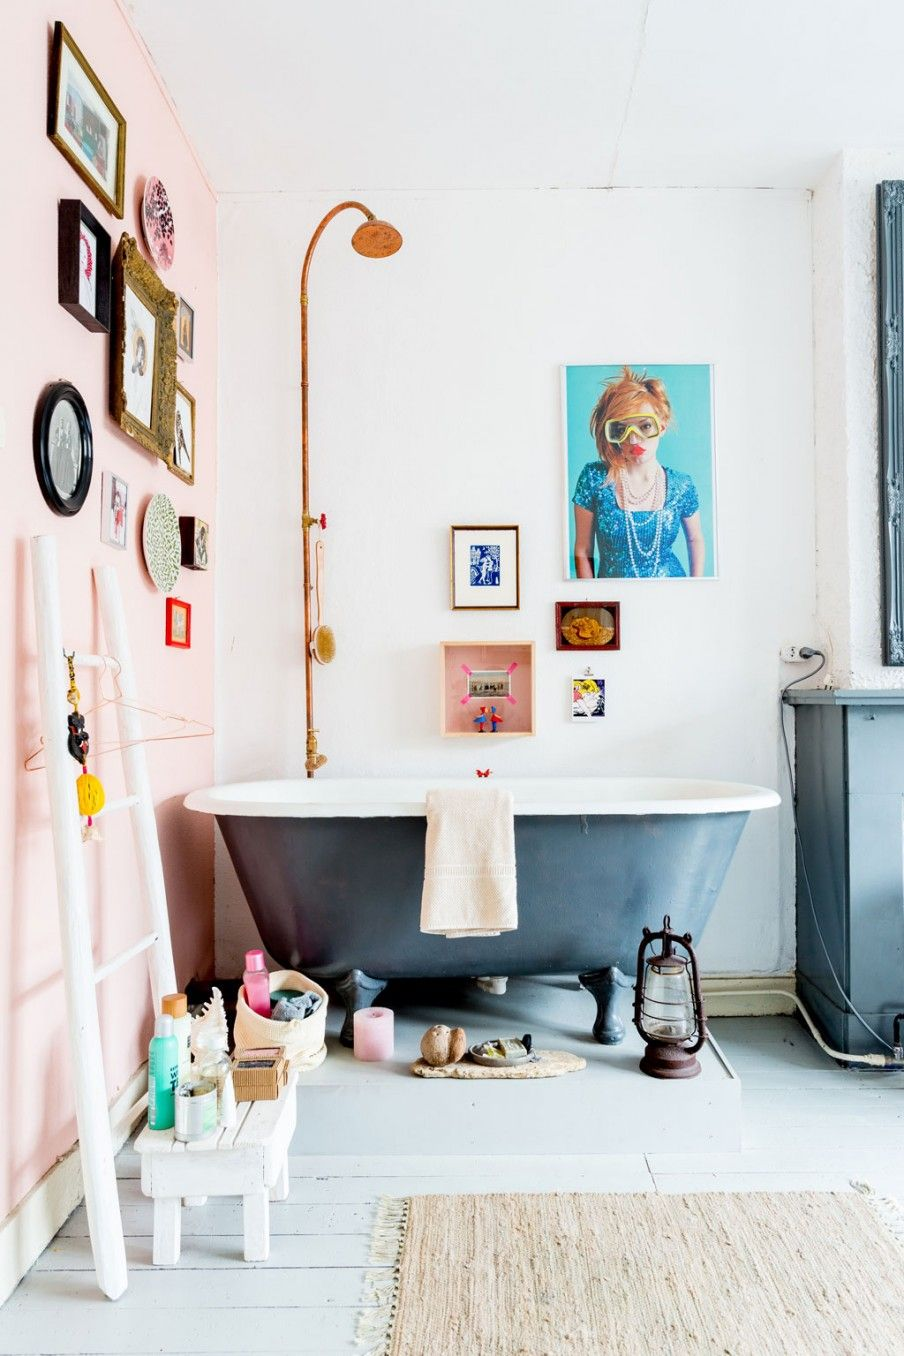 Colurful bathroom in a house full of stories and memories | Styling Sabine Burkunk | Photographer Hans Mossel | vtwonen August 2014